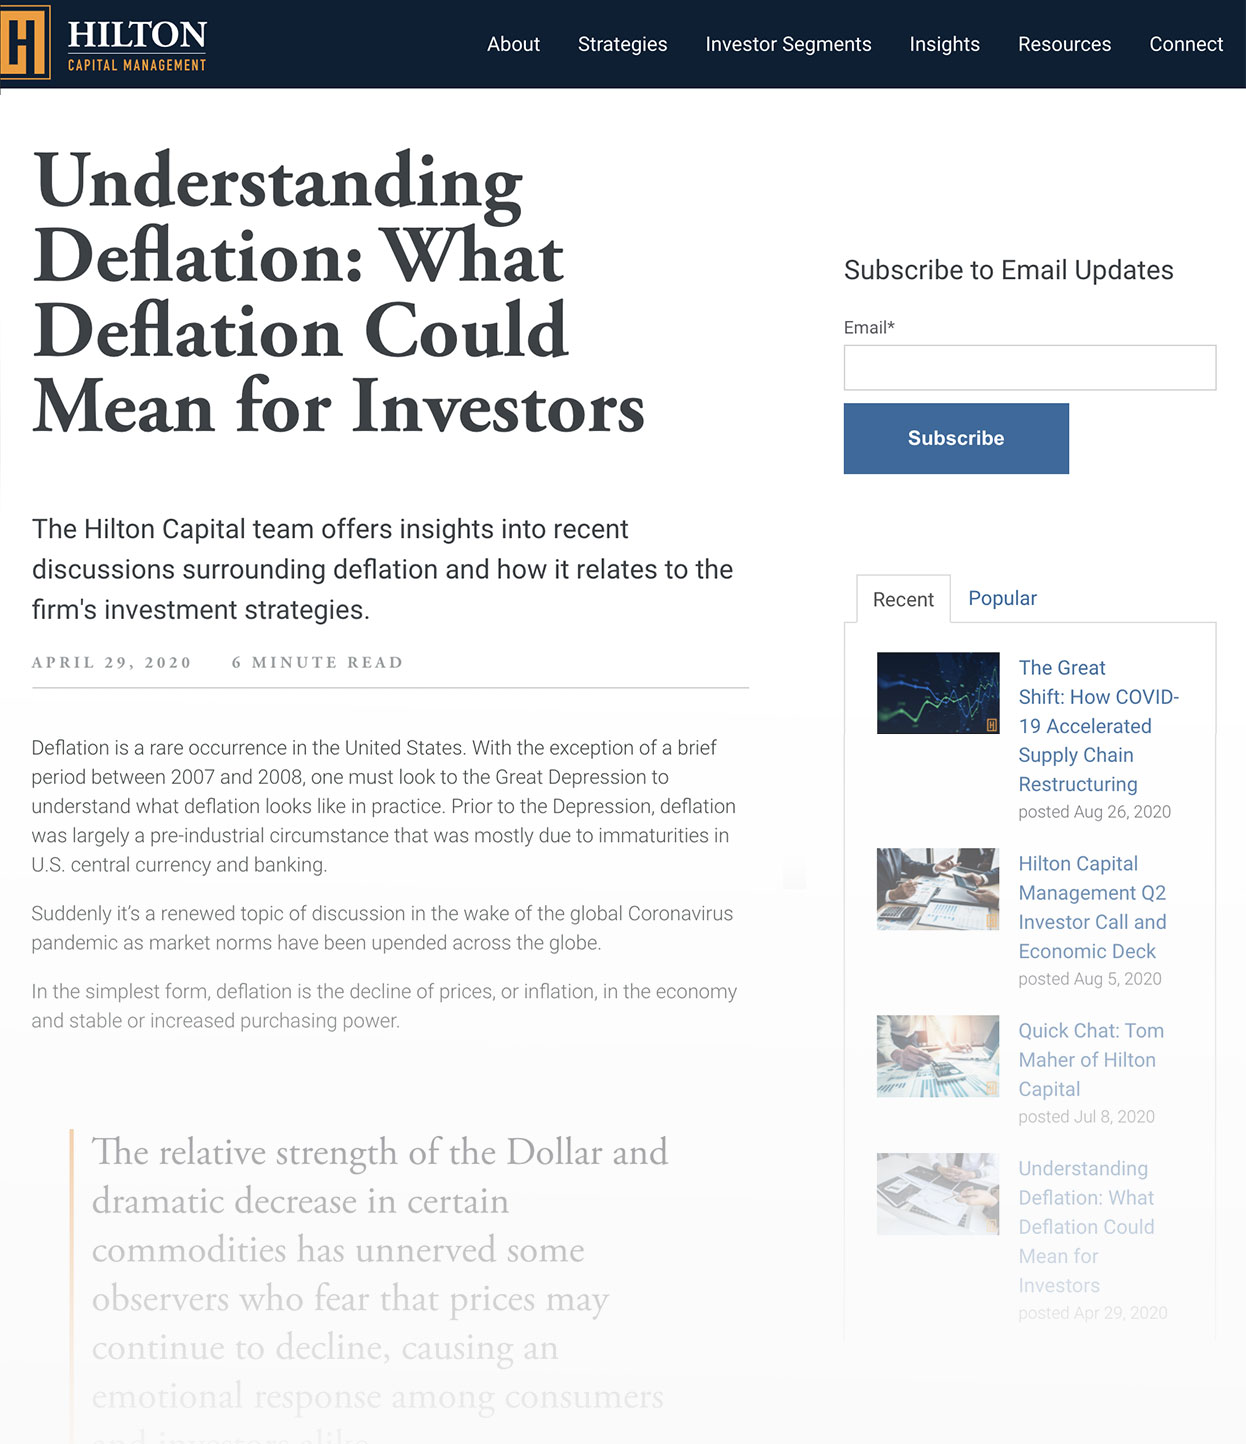 Screenshot of Hilton Capital Management Blog Called Understanding Deflation-What Deflation Could Mean for Investors